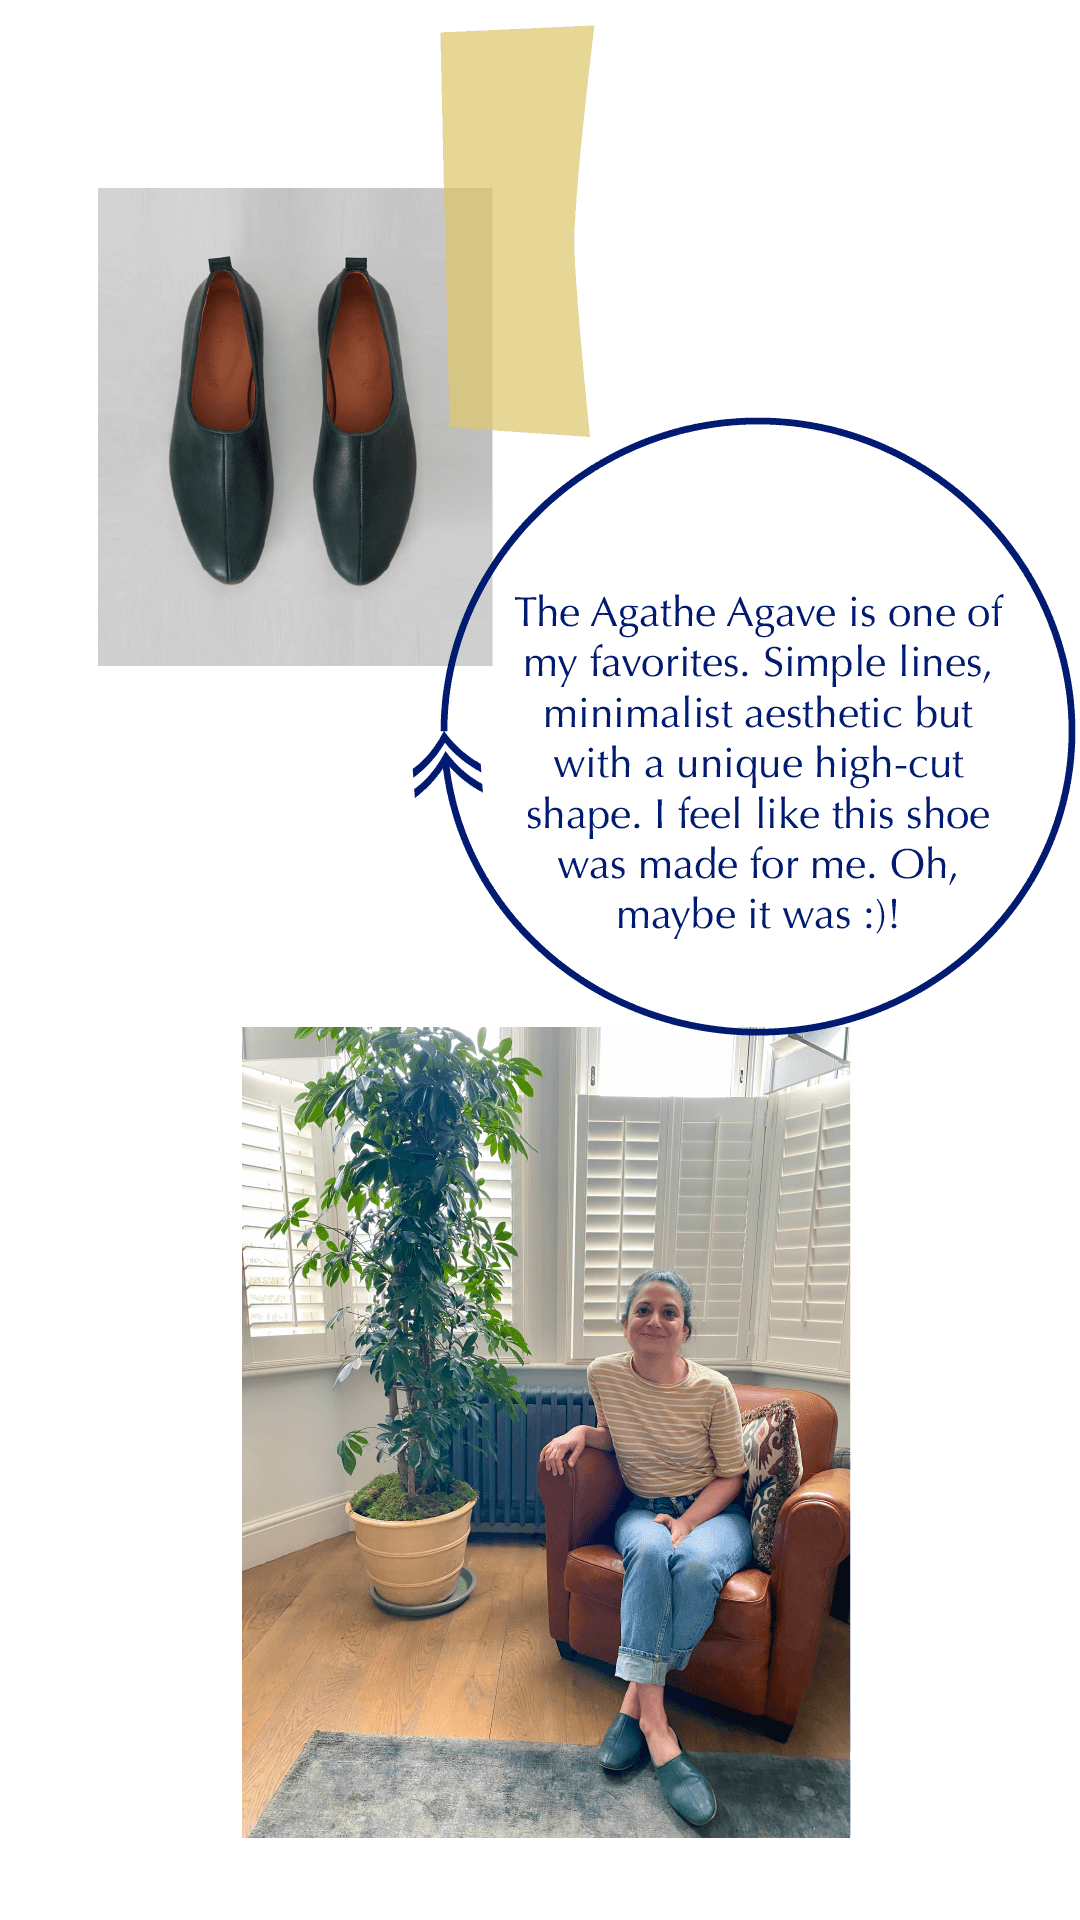 The Agathe ballet-flat is made with vegetable-tanned italian leather and features a unique, high-cut silhouette and a minimalist aesthetic.